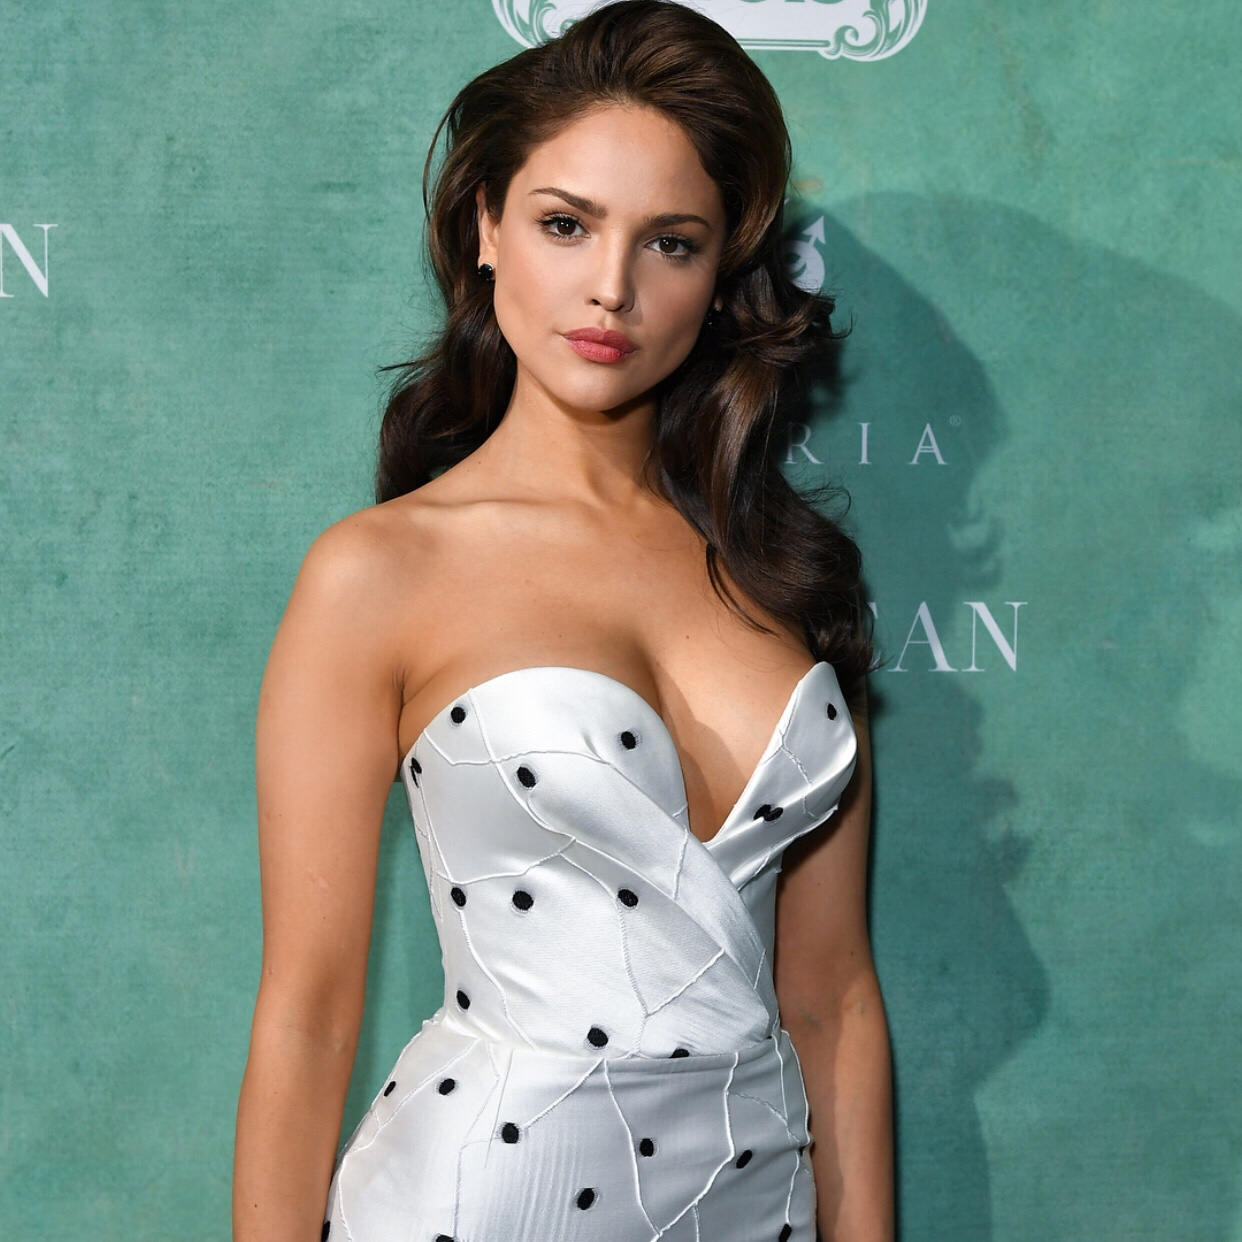 eiza gonzalez beautiful